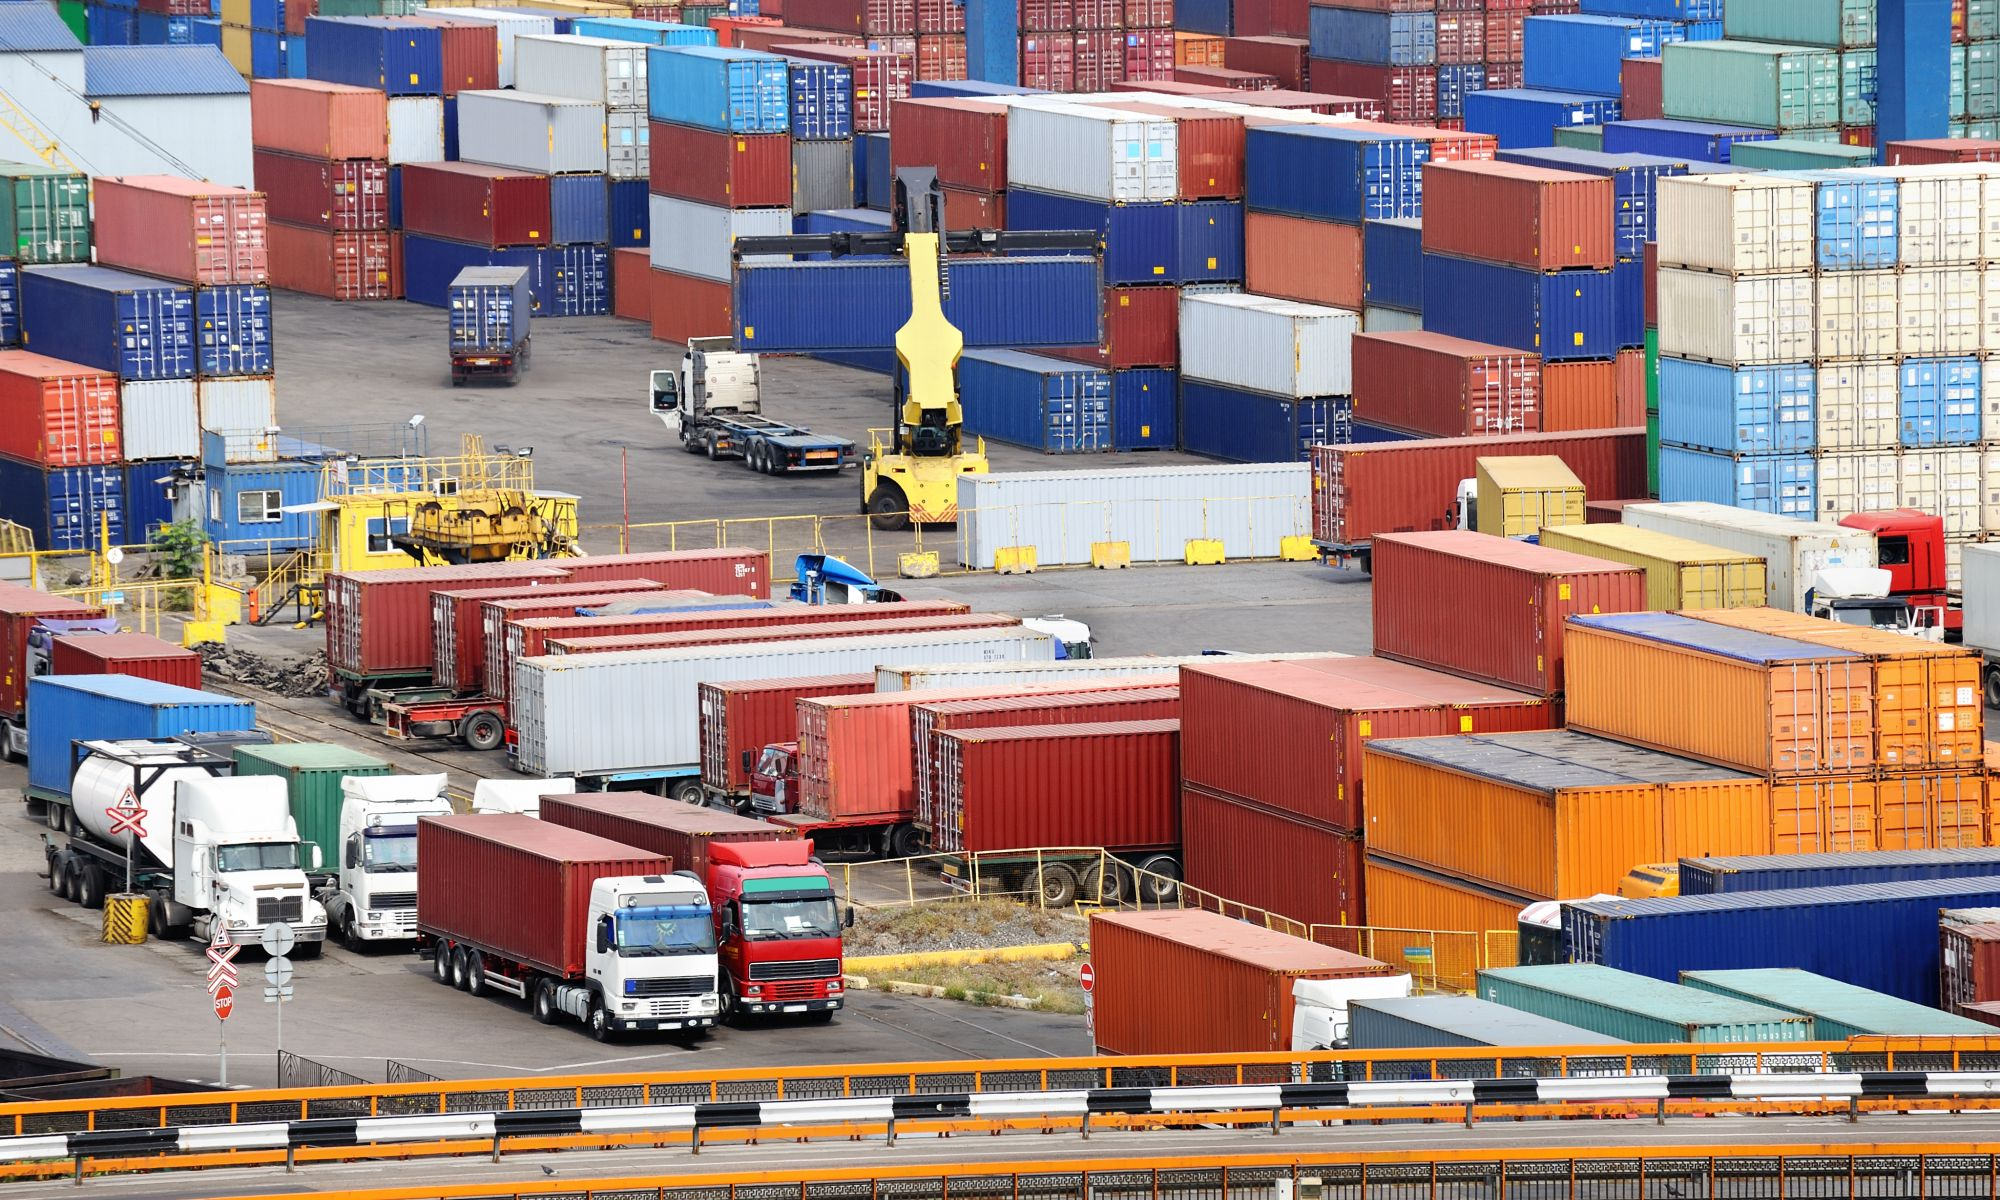 sea container warehouse and truck